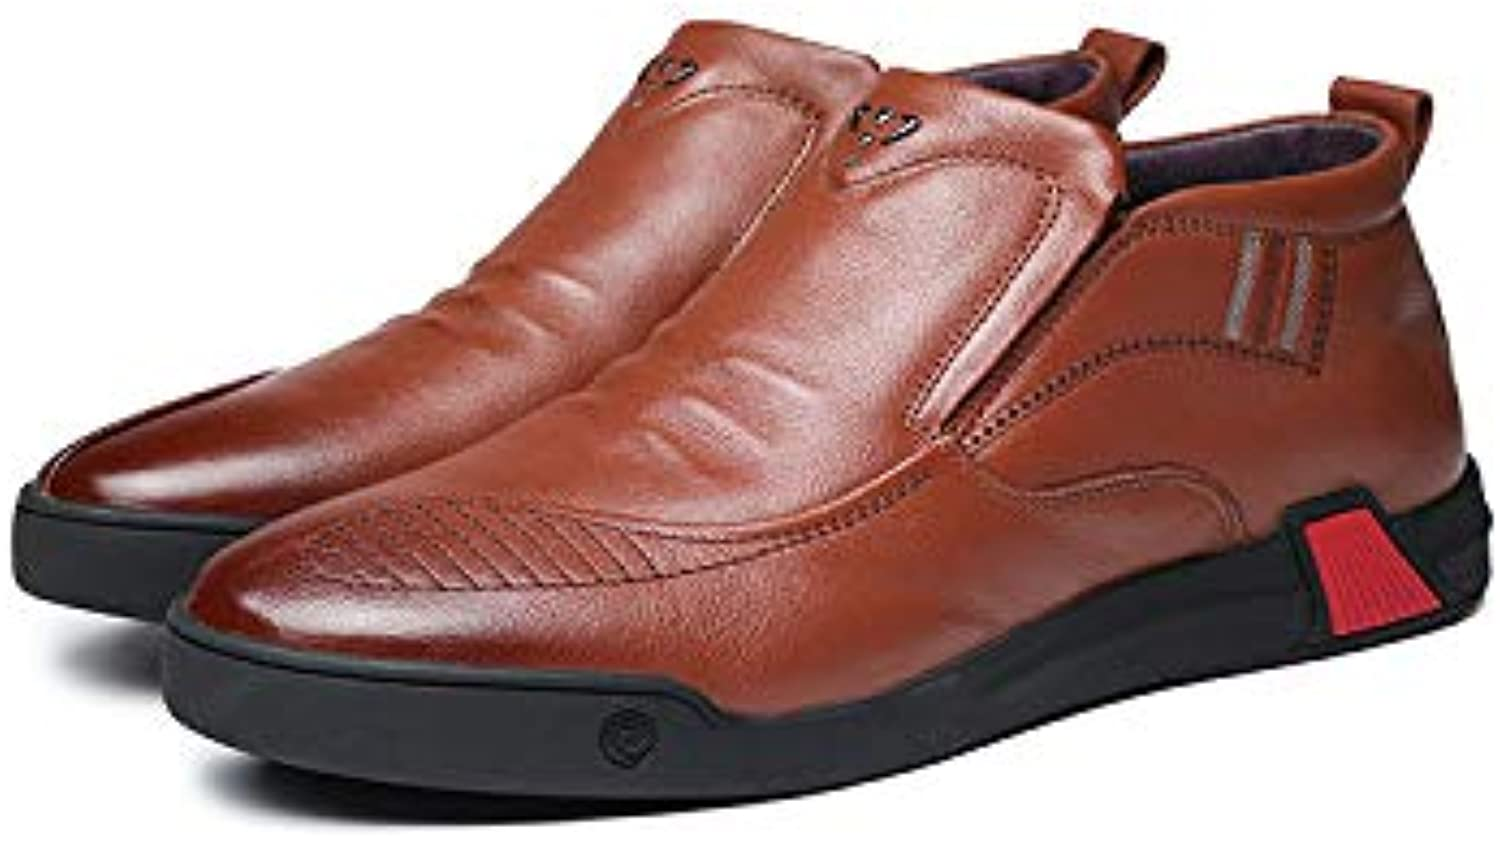 LOVDRAM Men'S Leather shoes, Cotton shoes, Fashion shoes, Men'S Casual shoes, Business, Non-Slip Work, Wearable